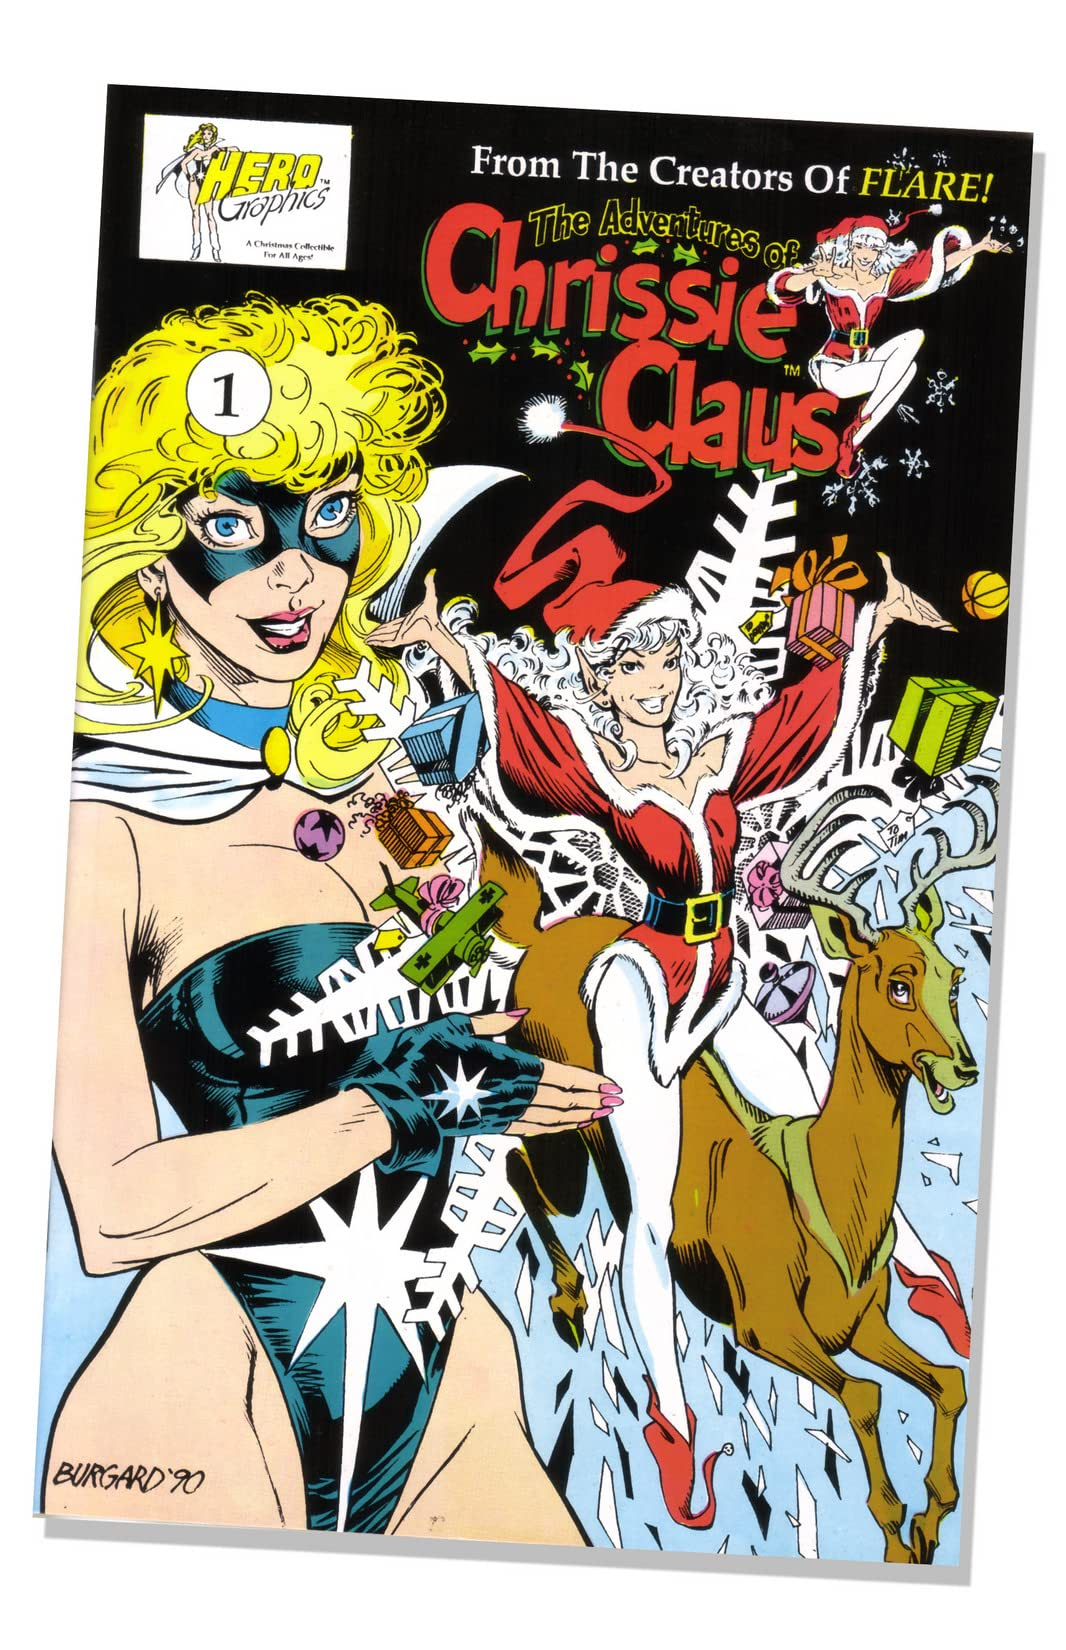 The Adventures of Chrissie Claus Graphic Novel Collection Vol. 1